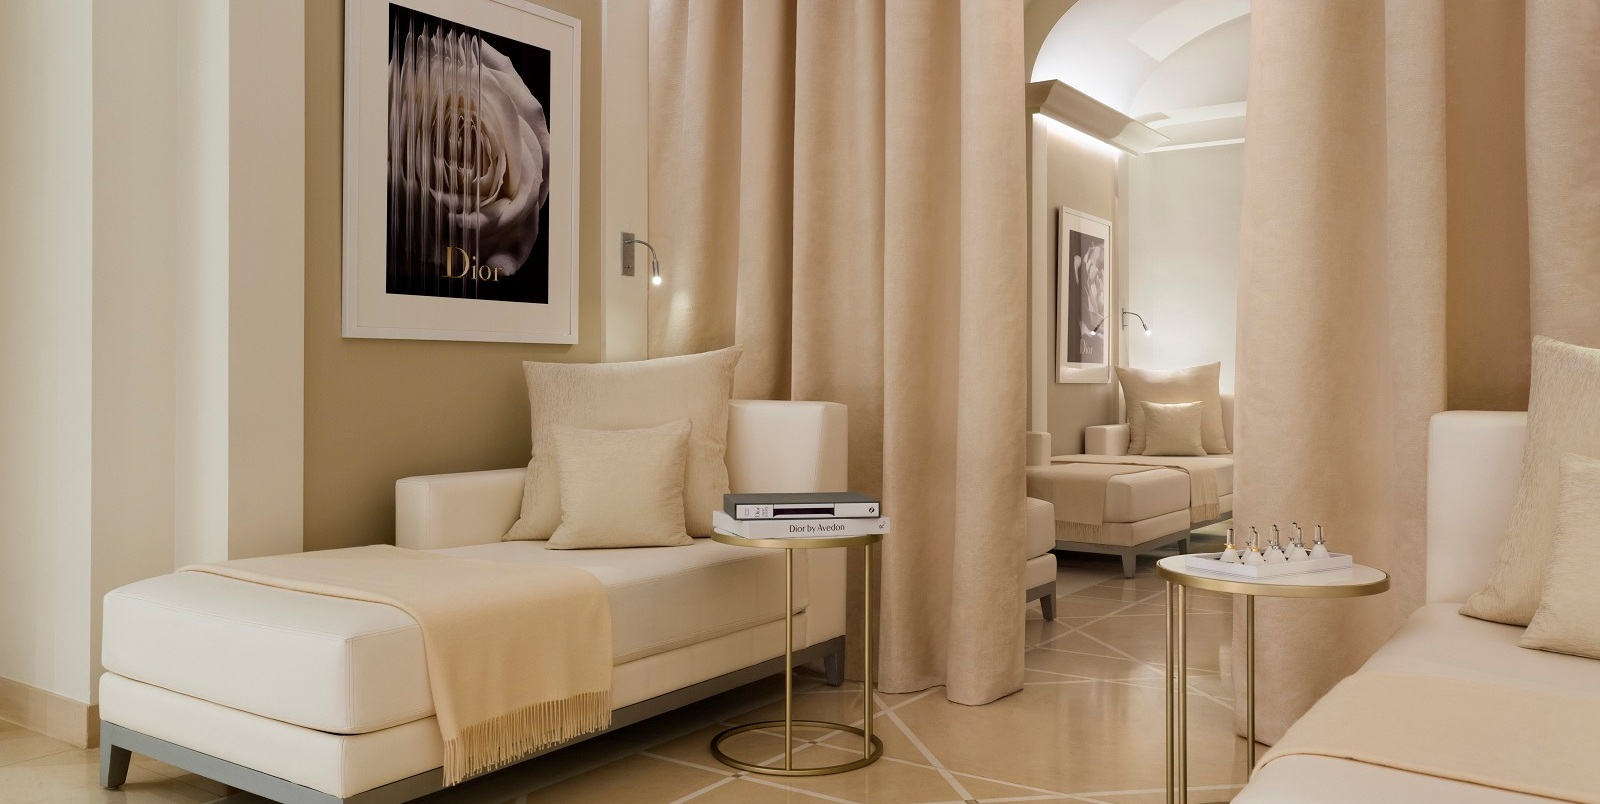 Relaxation and Rejuvenation Meet Haute Couture at a Paris Spa - Dior Institut - Hotel Plaza Athenee - Lounge Area - Glamorous Spa Design